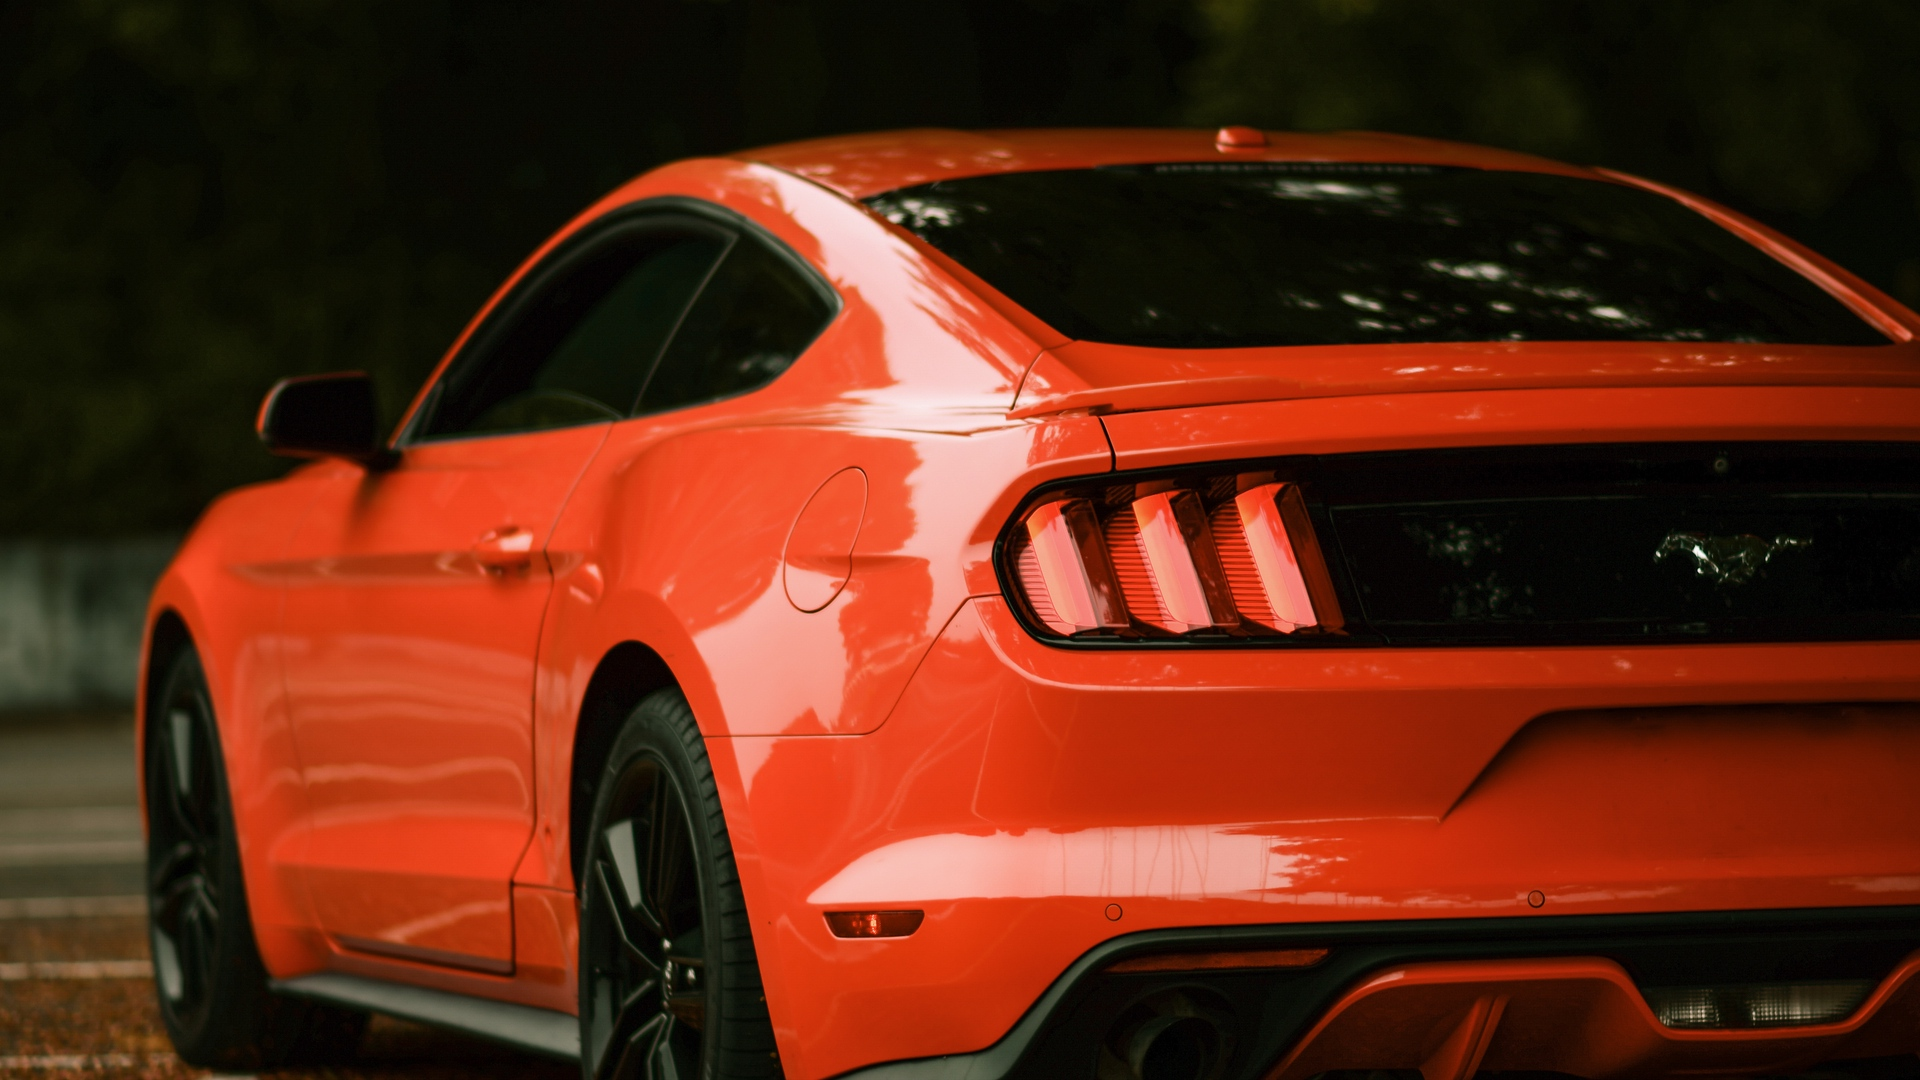 Wallpaper Ford Mustang Ford Car Red Side View Mustang Ford Wallpapers Full Hd 2486234 Hd Wallpaper Backgrounds Download